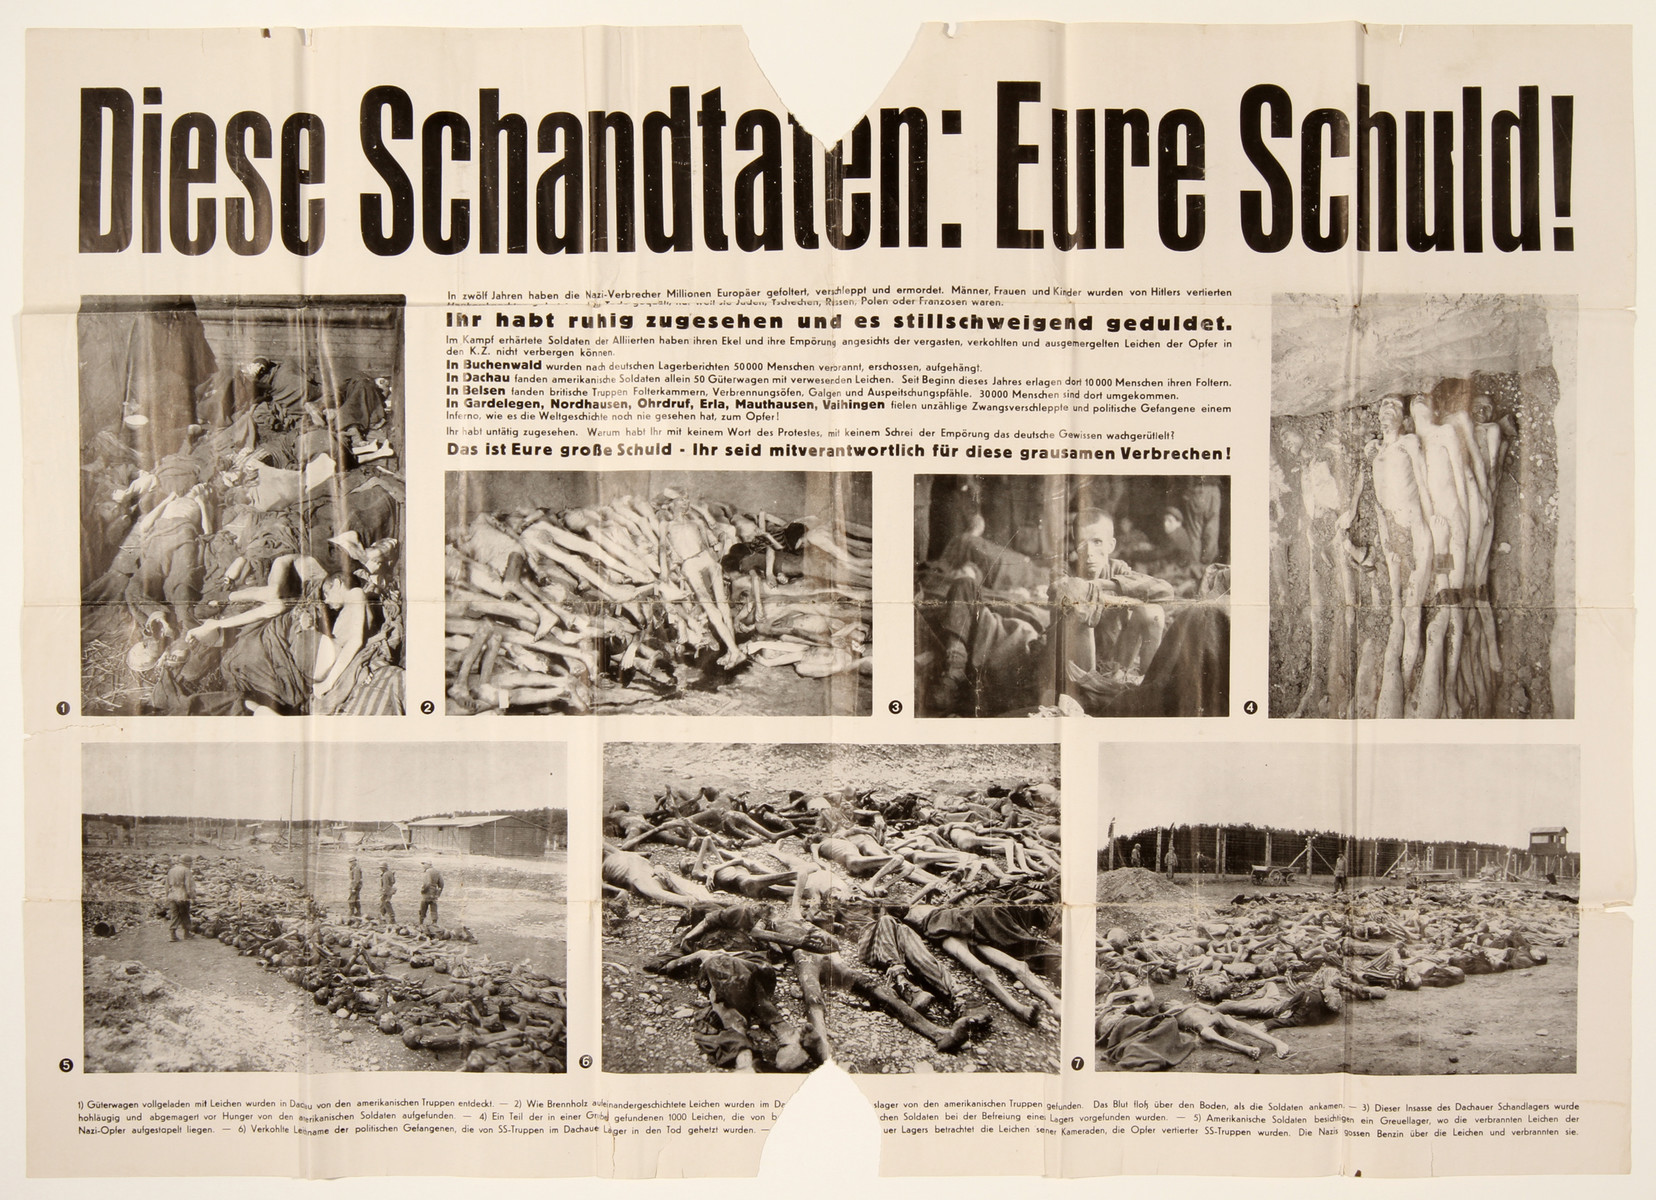 """Denazification poster entitled """"These outrages: Your fault!""""  The poster is  illustrated with seven horrific photographs of various concentration camps following liberation and the subtitle reads: """" You've watched and quietly tolerated it""""."""